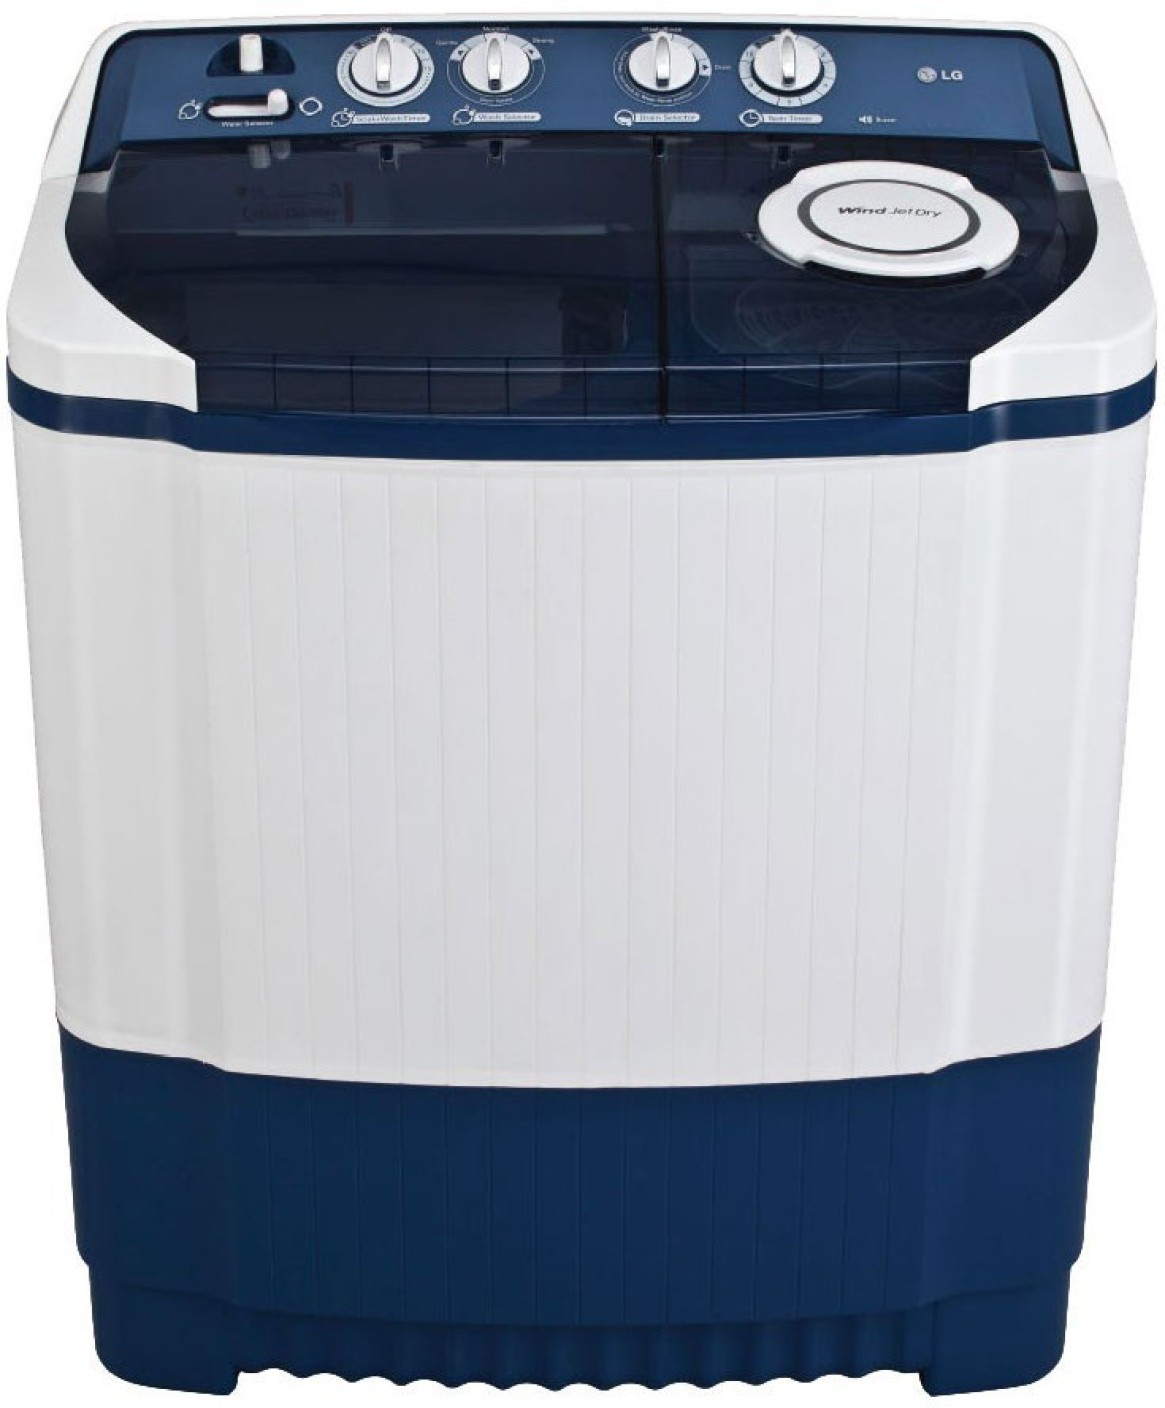 LG 7 kg Semi Automatic Top Load Washing Machine Price in ...